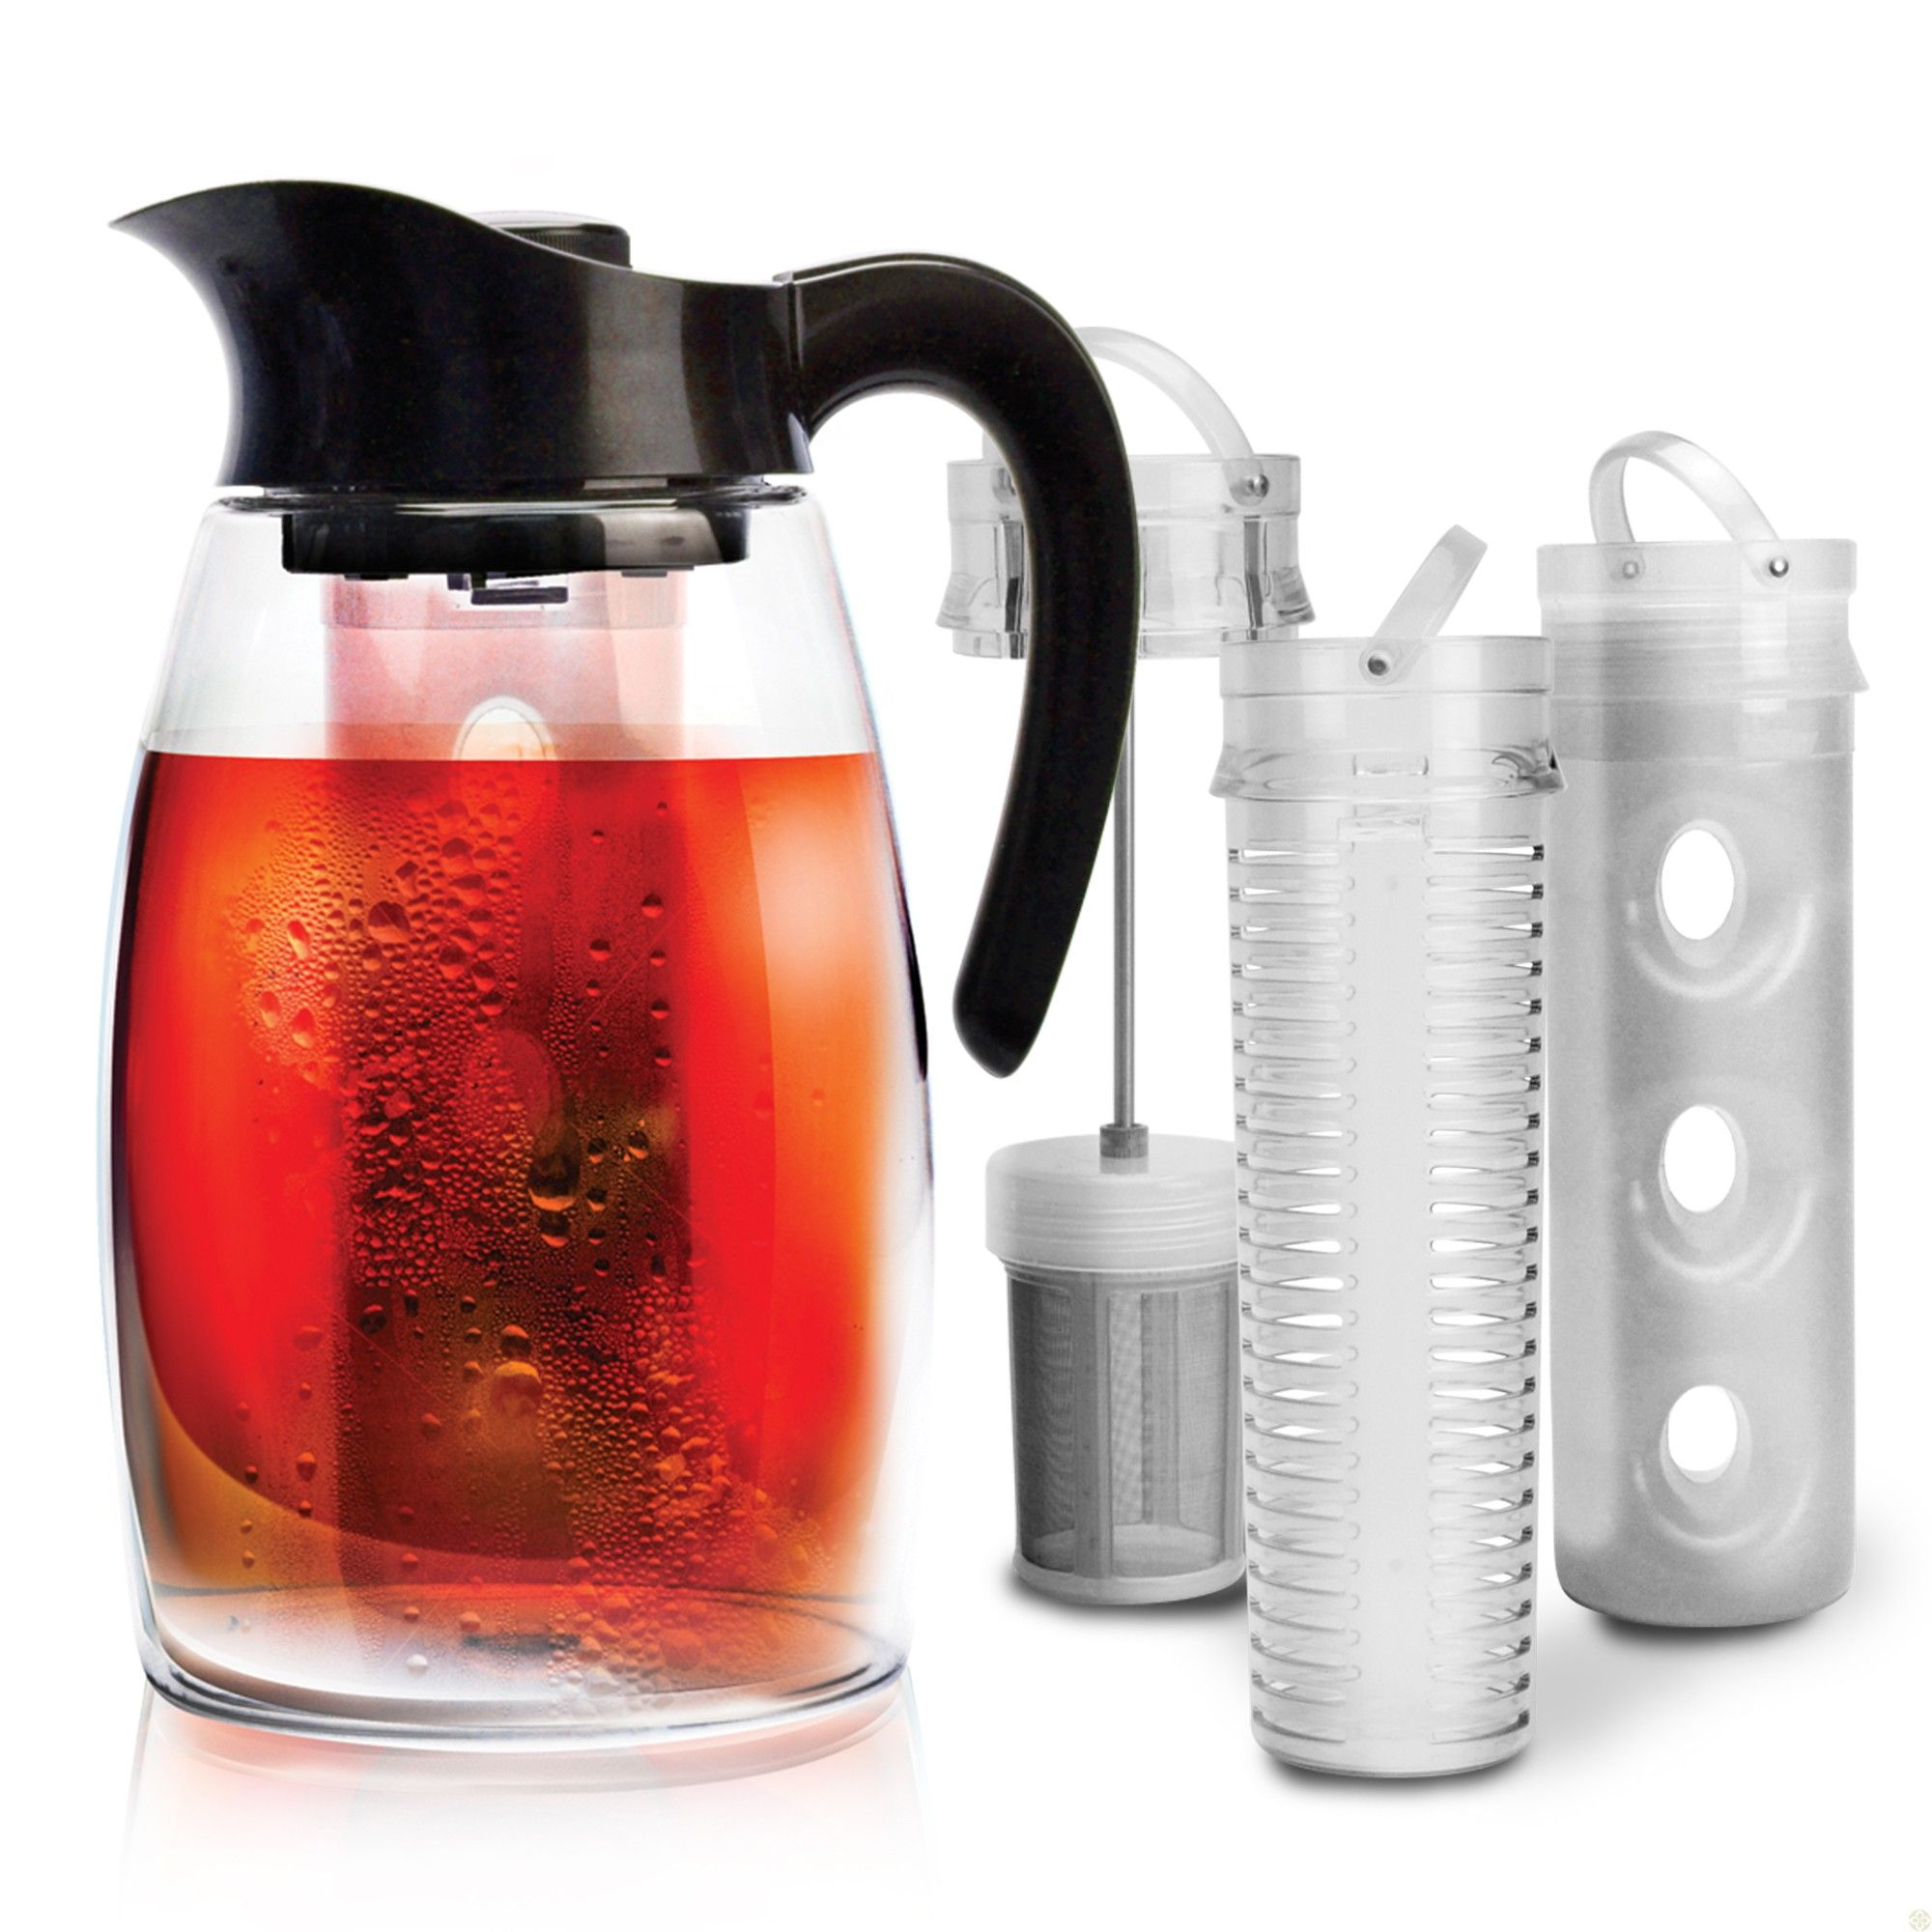 Flavor It Pitcher 3 In 1 Beverage System Fruit Infused Water Bottle Beverages Infused Water Bottle